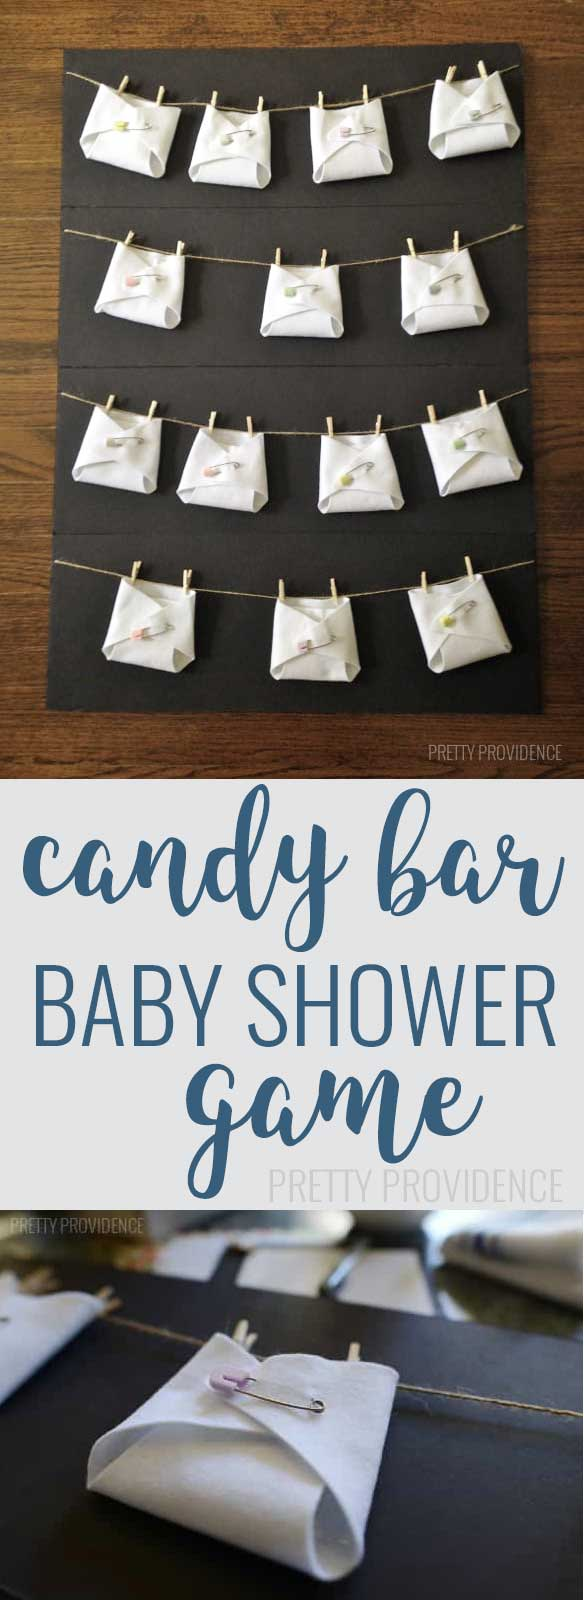 candy bar diaper game, baby shower ideas, cute baby shower, best baby shower ideas, baby shower cake, fun games for baby shower, baby shower food